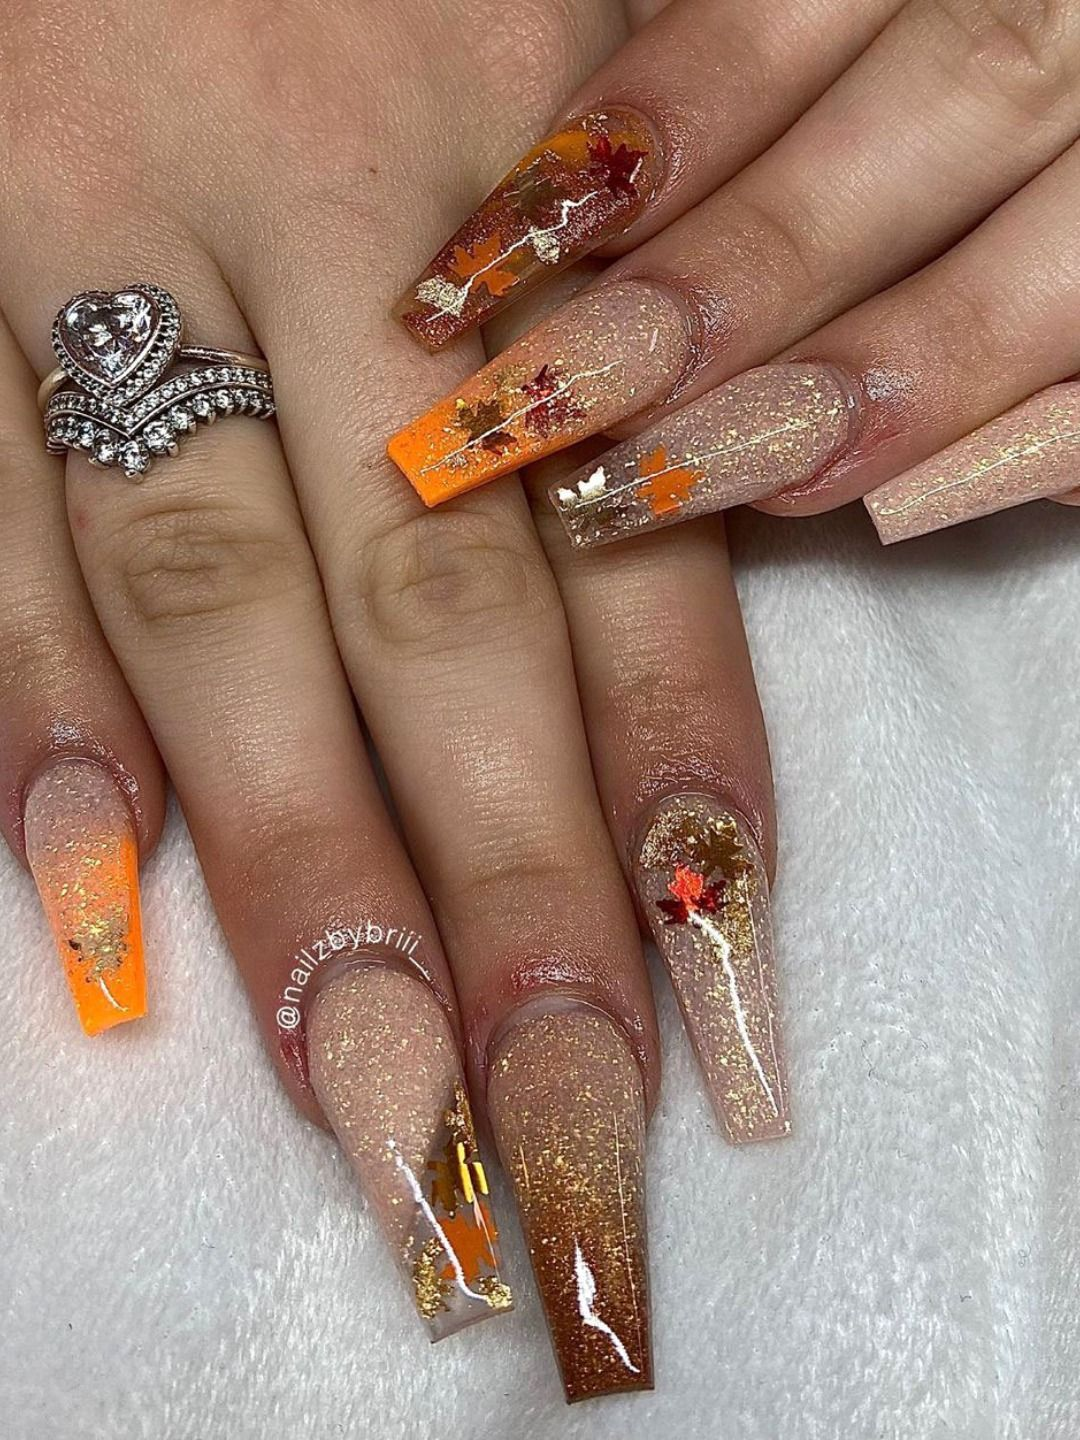 Cute Autumn Nails Acrylic Coffin Long Ideas With Glitter 494903446551281969 Stylish Nails Art Fall Acrylic Nails Coffin Nails Designs